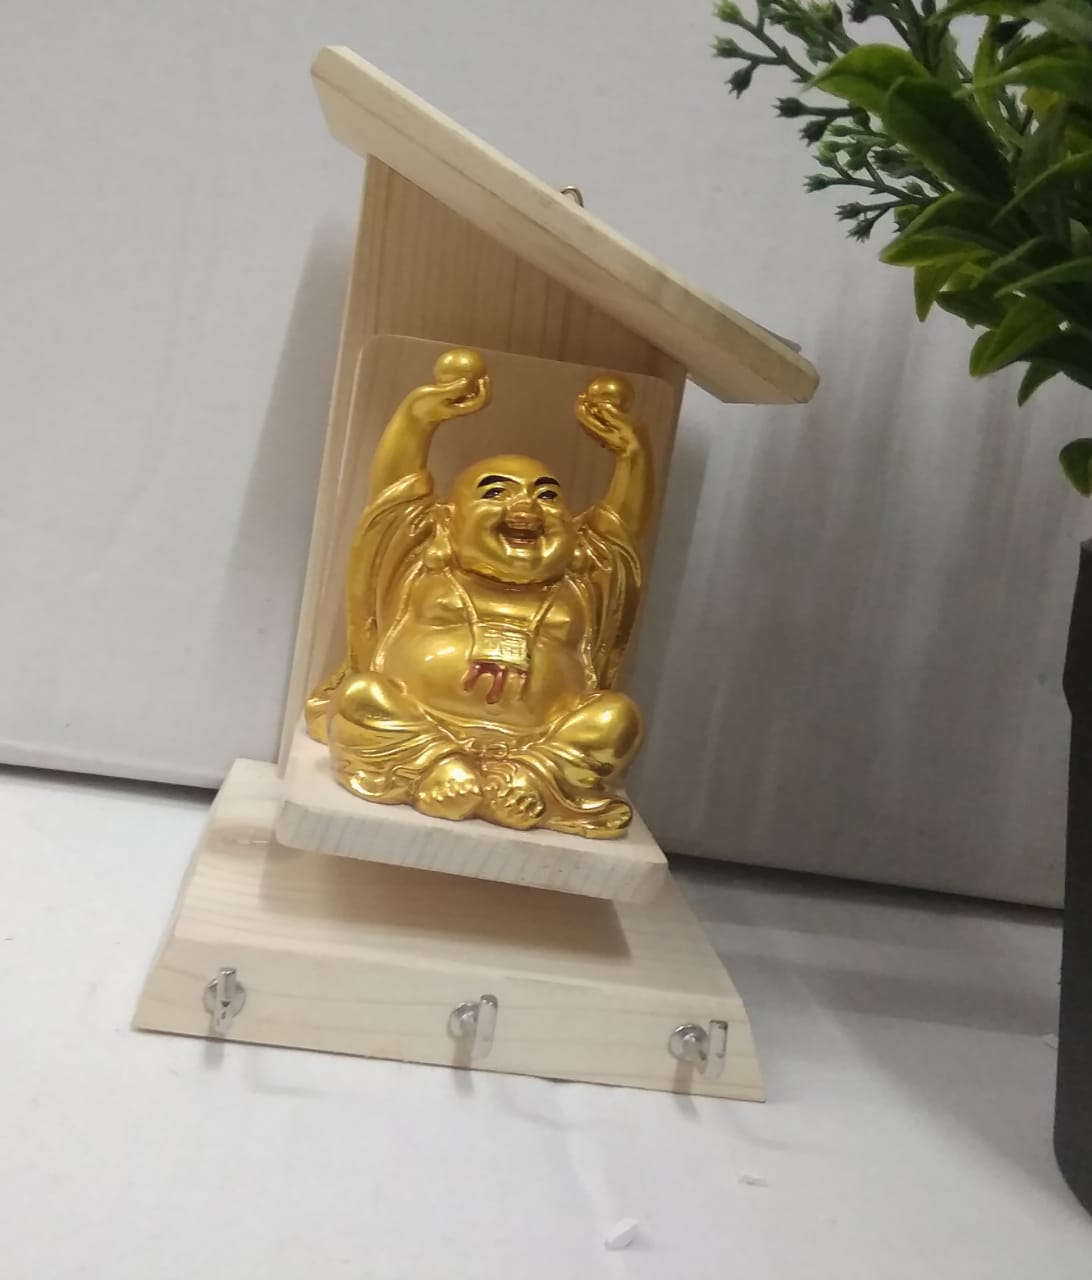 Buy Wooden Key holder with laughing Buddha NY264 Online